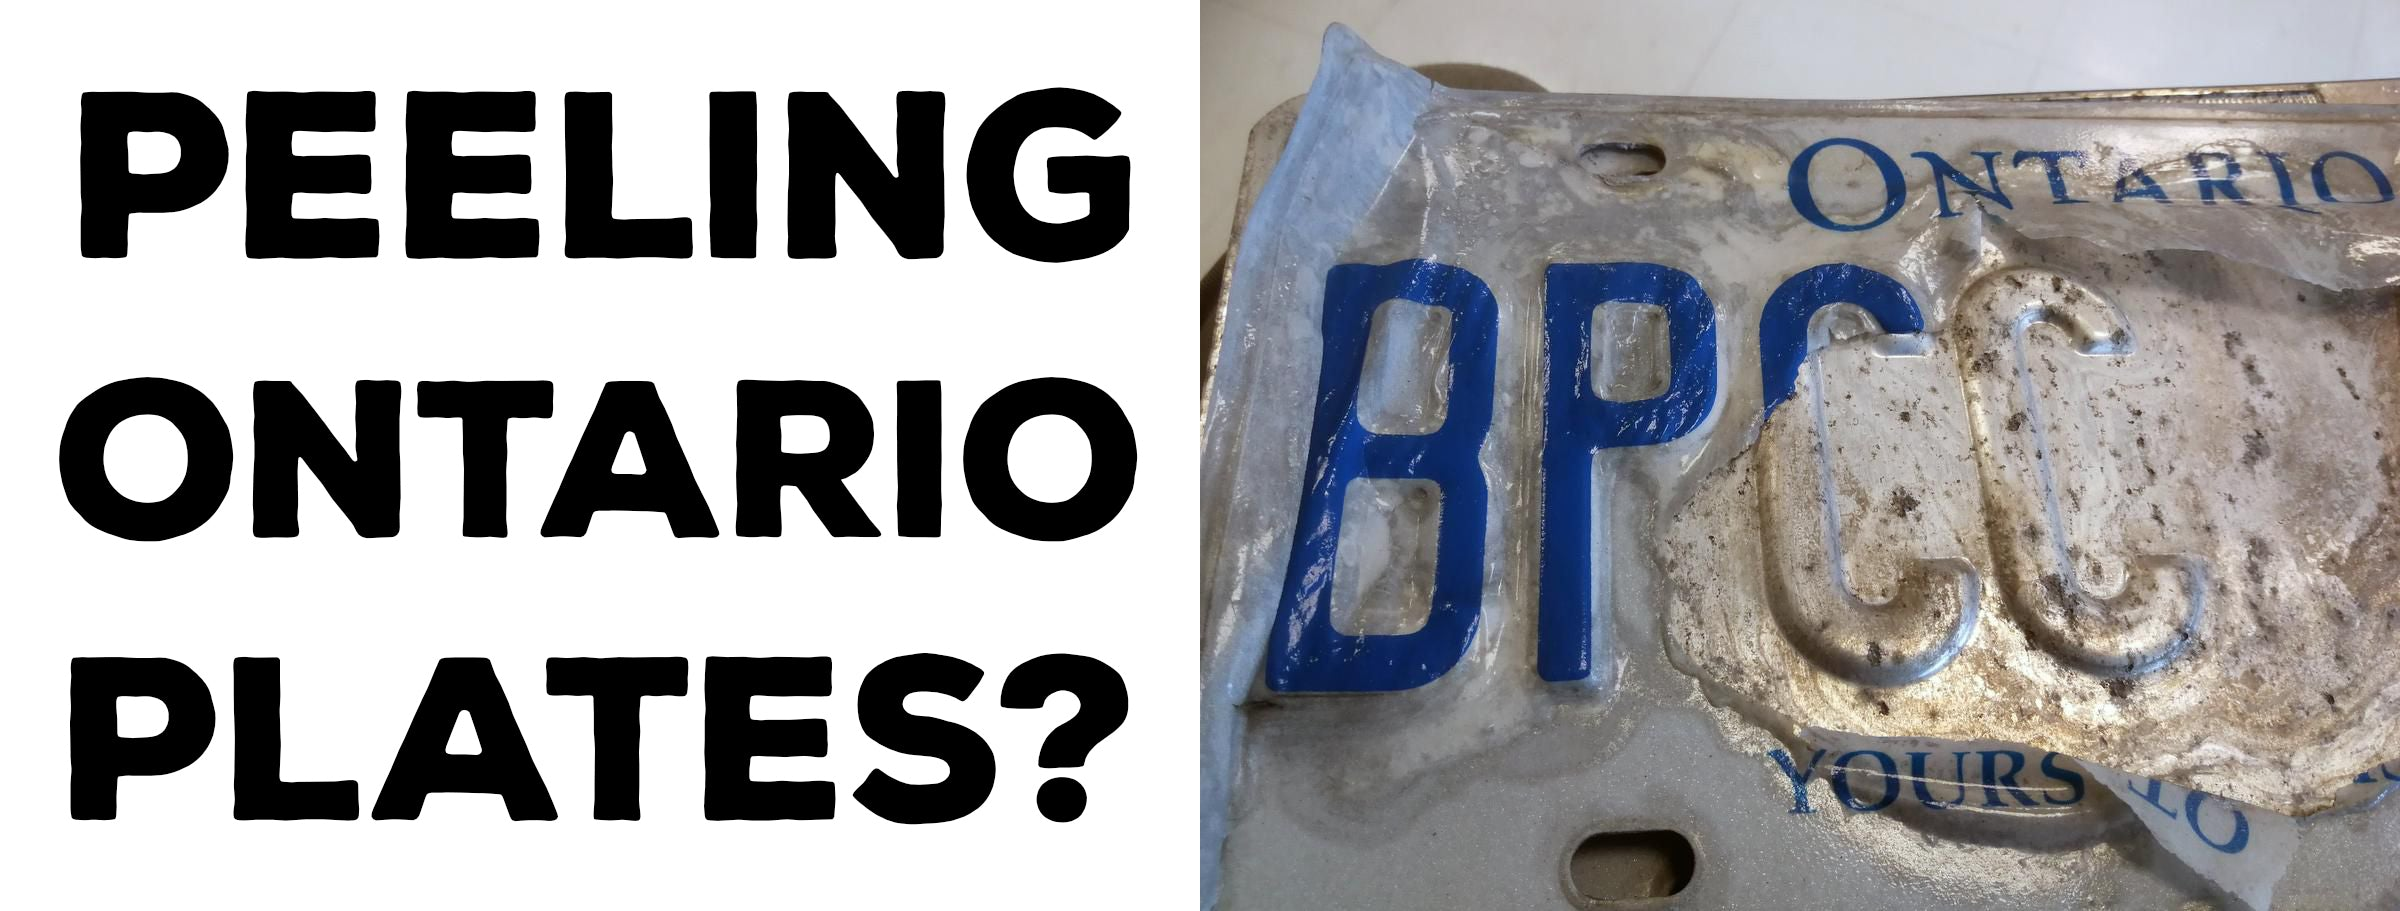 My Ontario licence plate is peeling. What should I do?